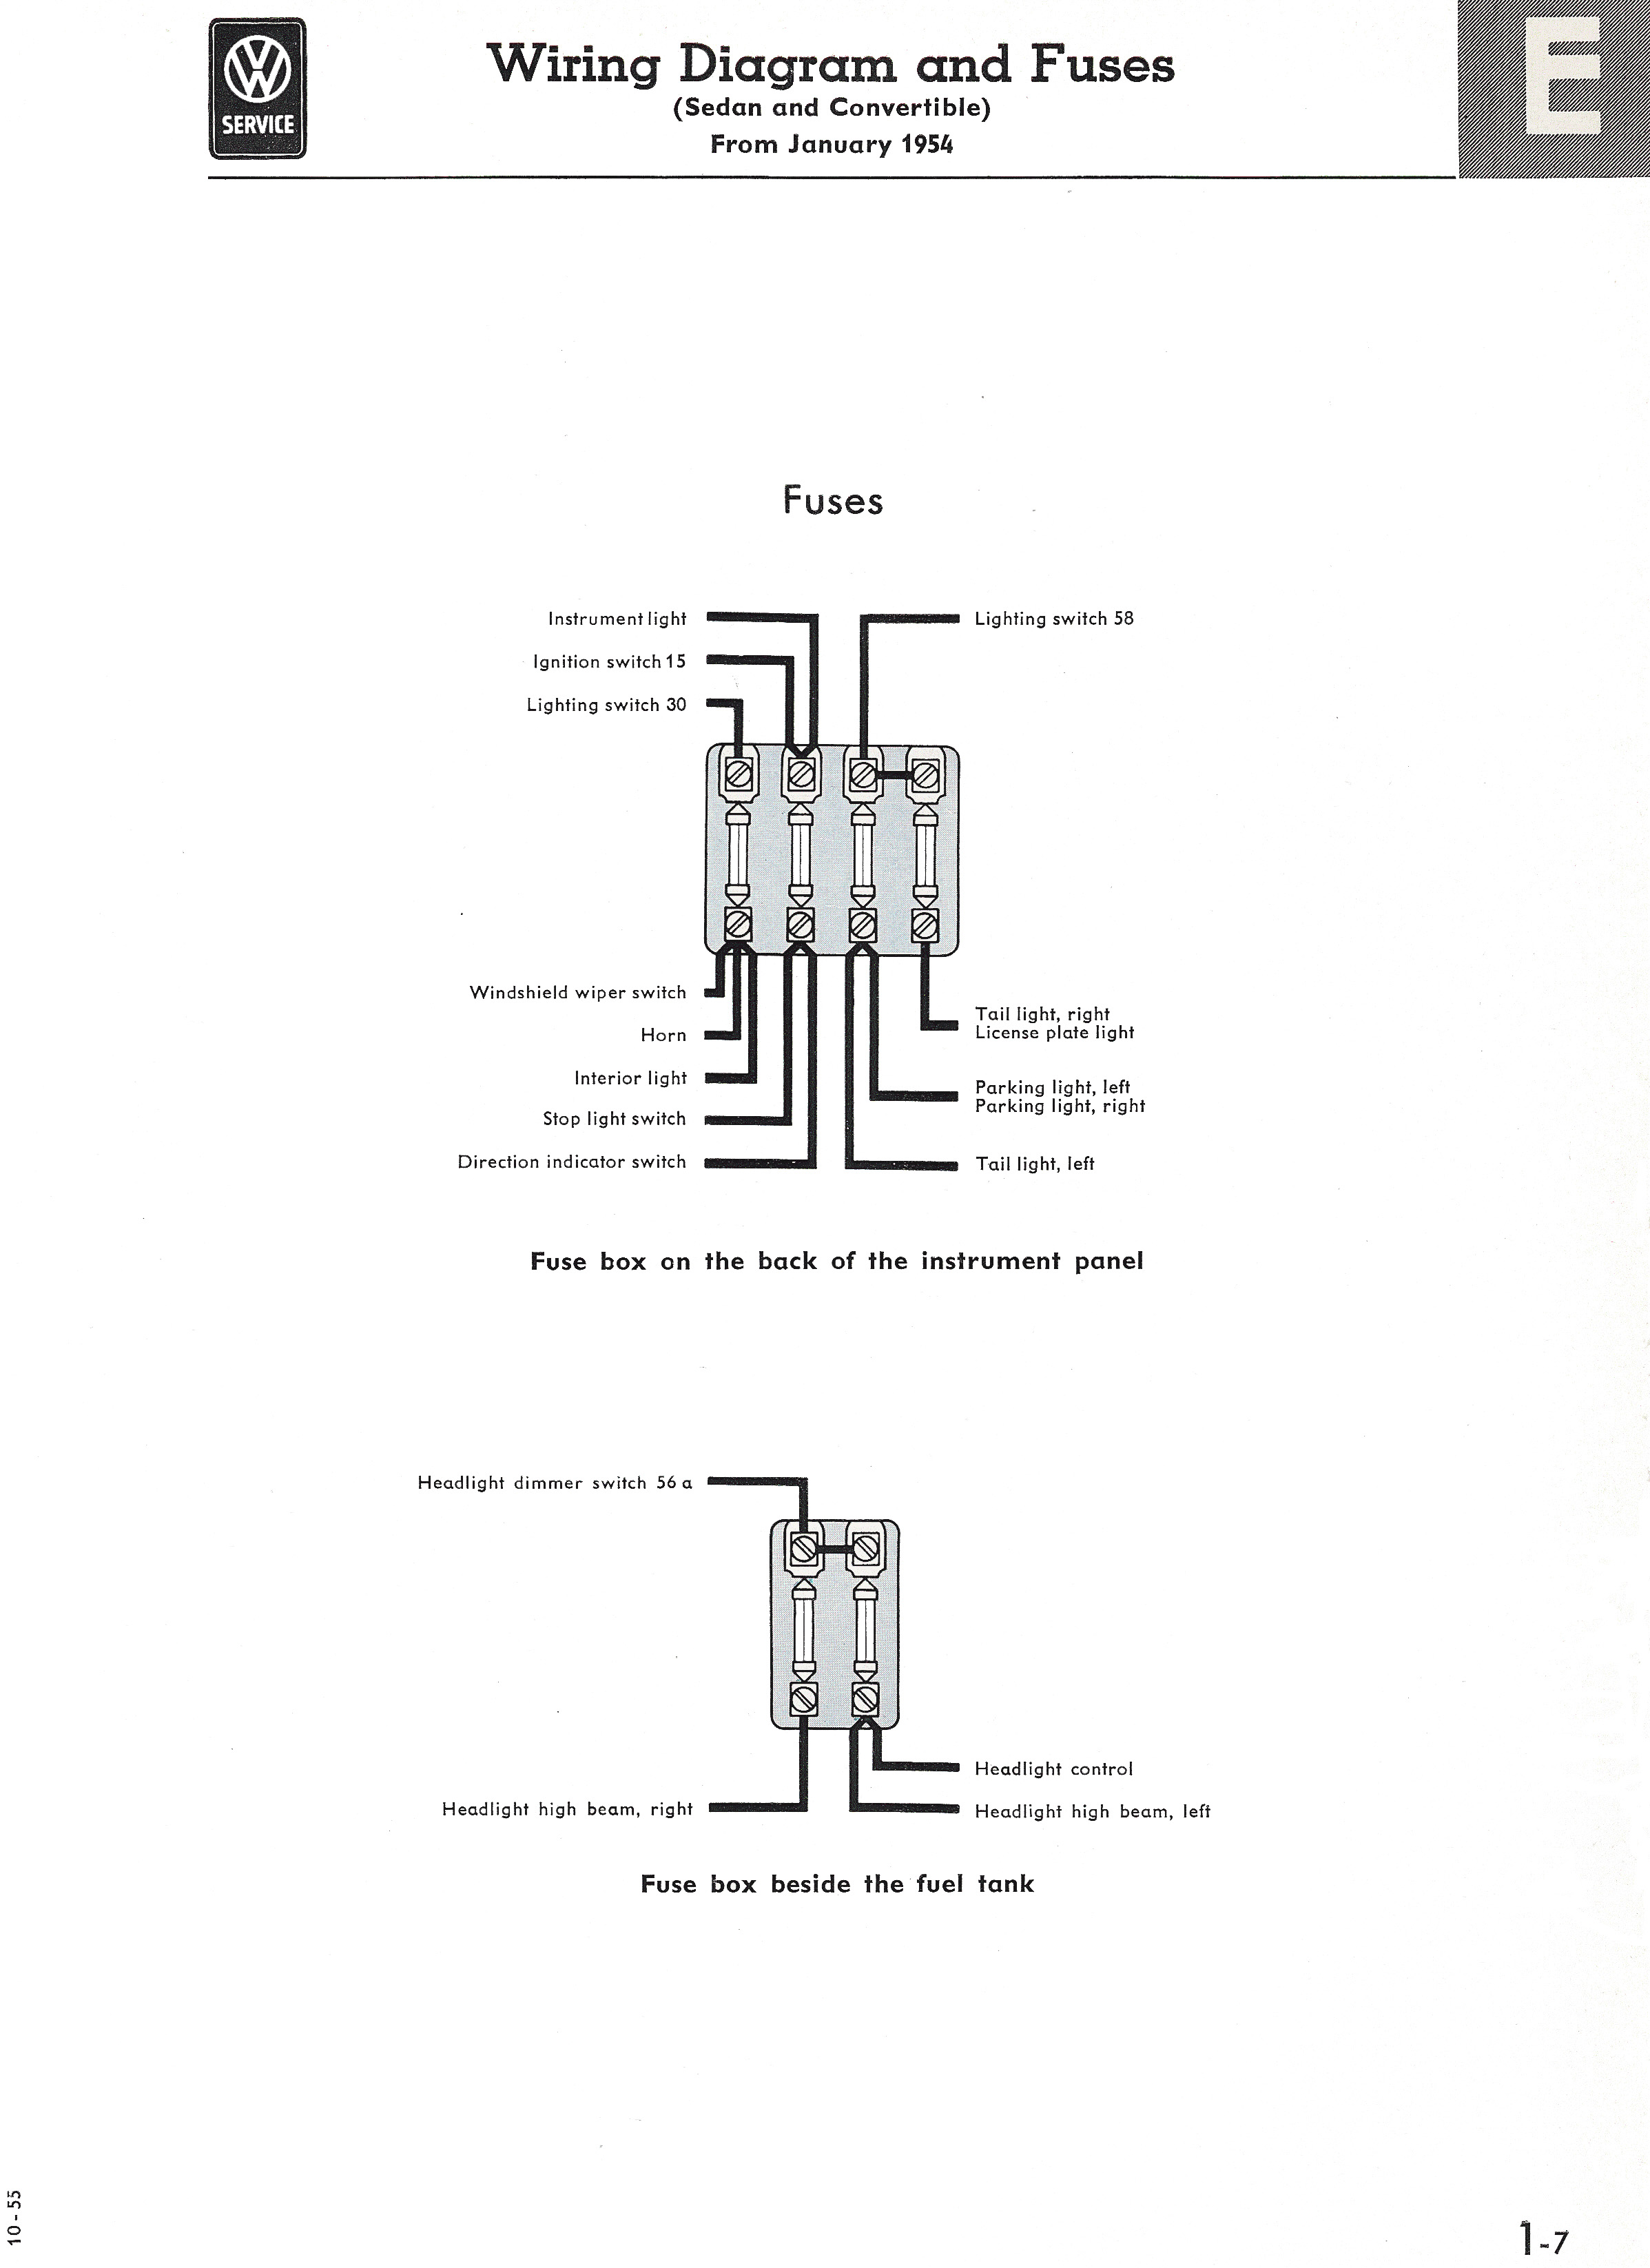 Type 1 Wiring Diagrams Ka Car Fuse Box